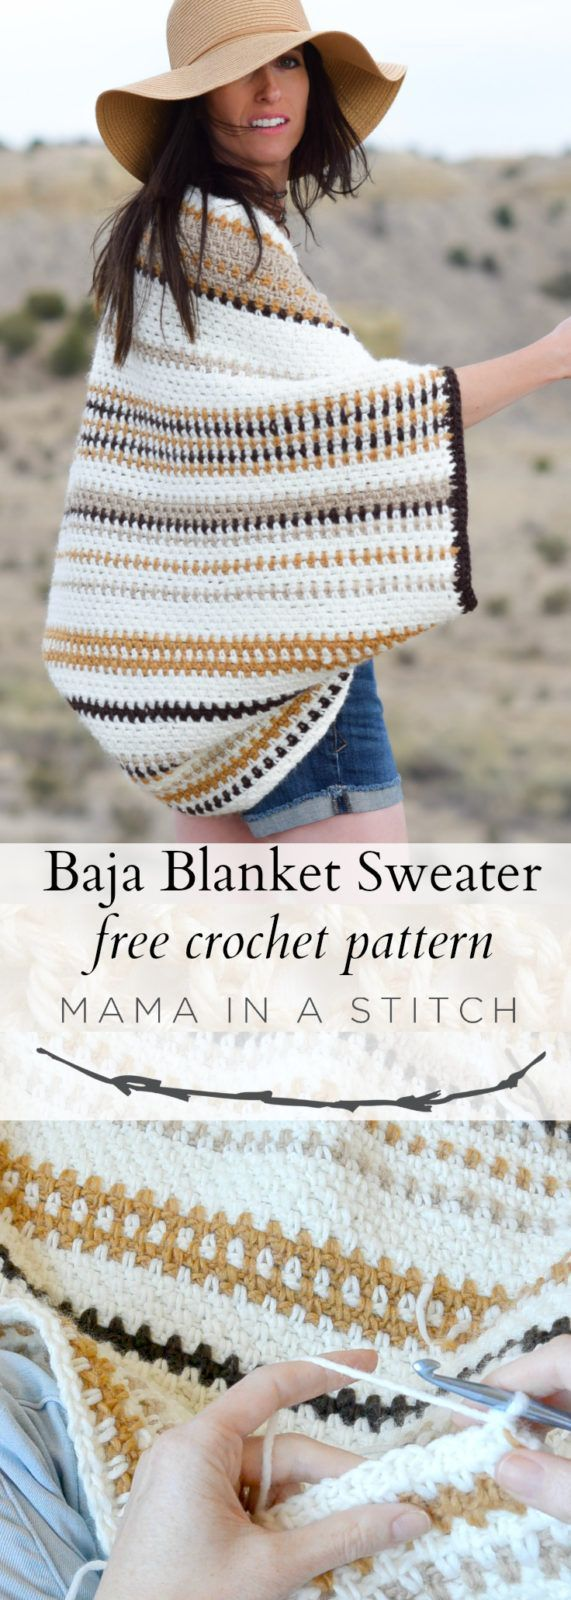 Baja Blanket Sweater Crochet Pattern #blanketsweater Baja Blanket Sweater Crochet Pattern via @MamaInAStitch This easy, free crochet pattern is so simple and beautiful. There's a stitch tutorial and pattern included. #diy #crafts #mamainastitch #freepattern #crochet #summer #blanketsweater